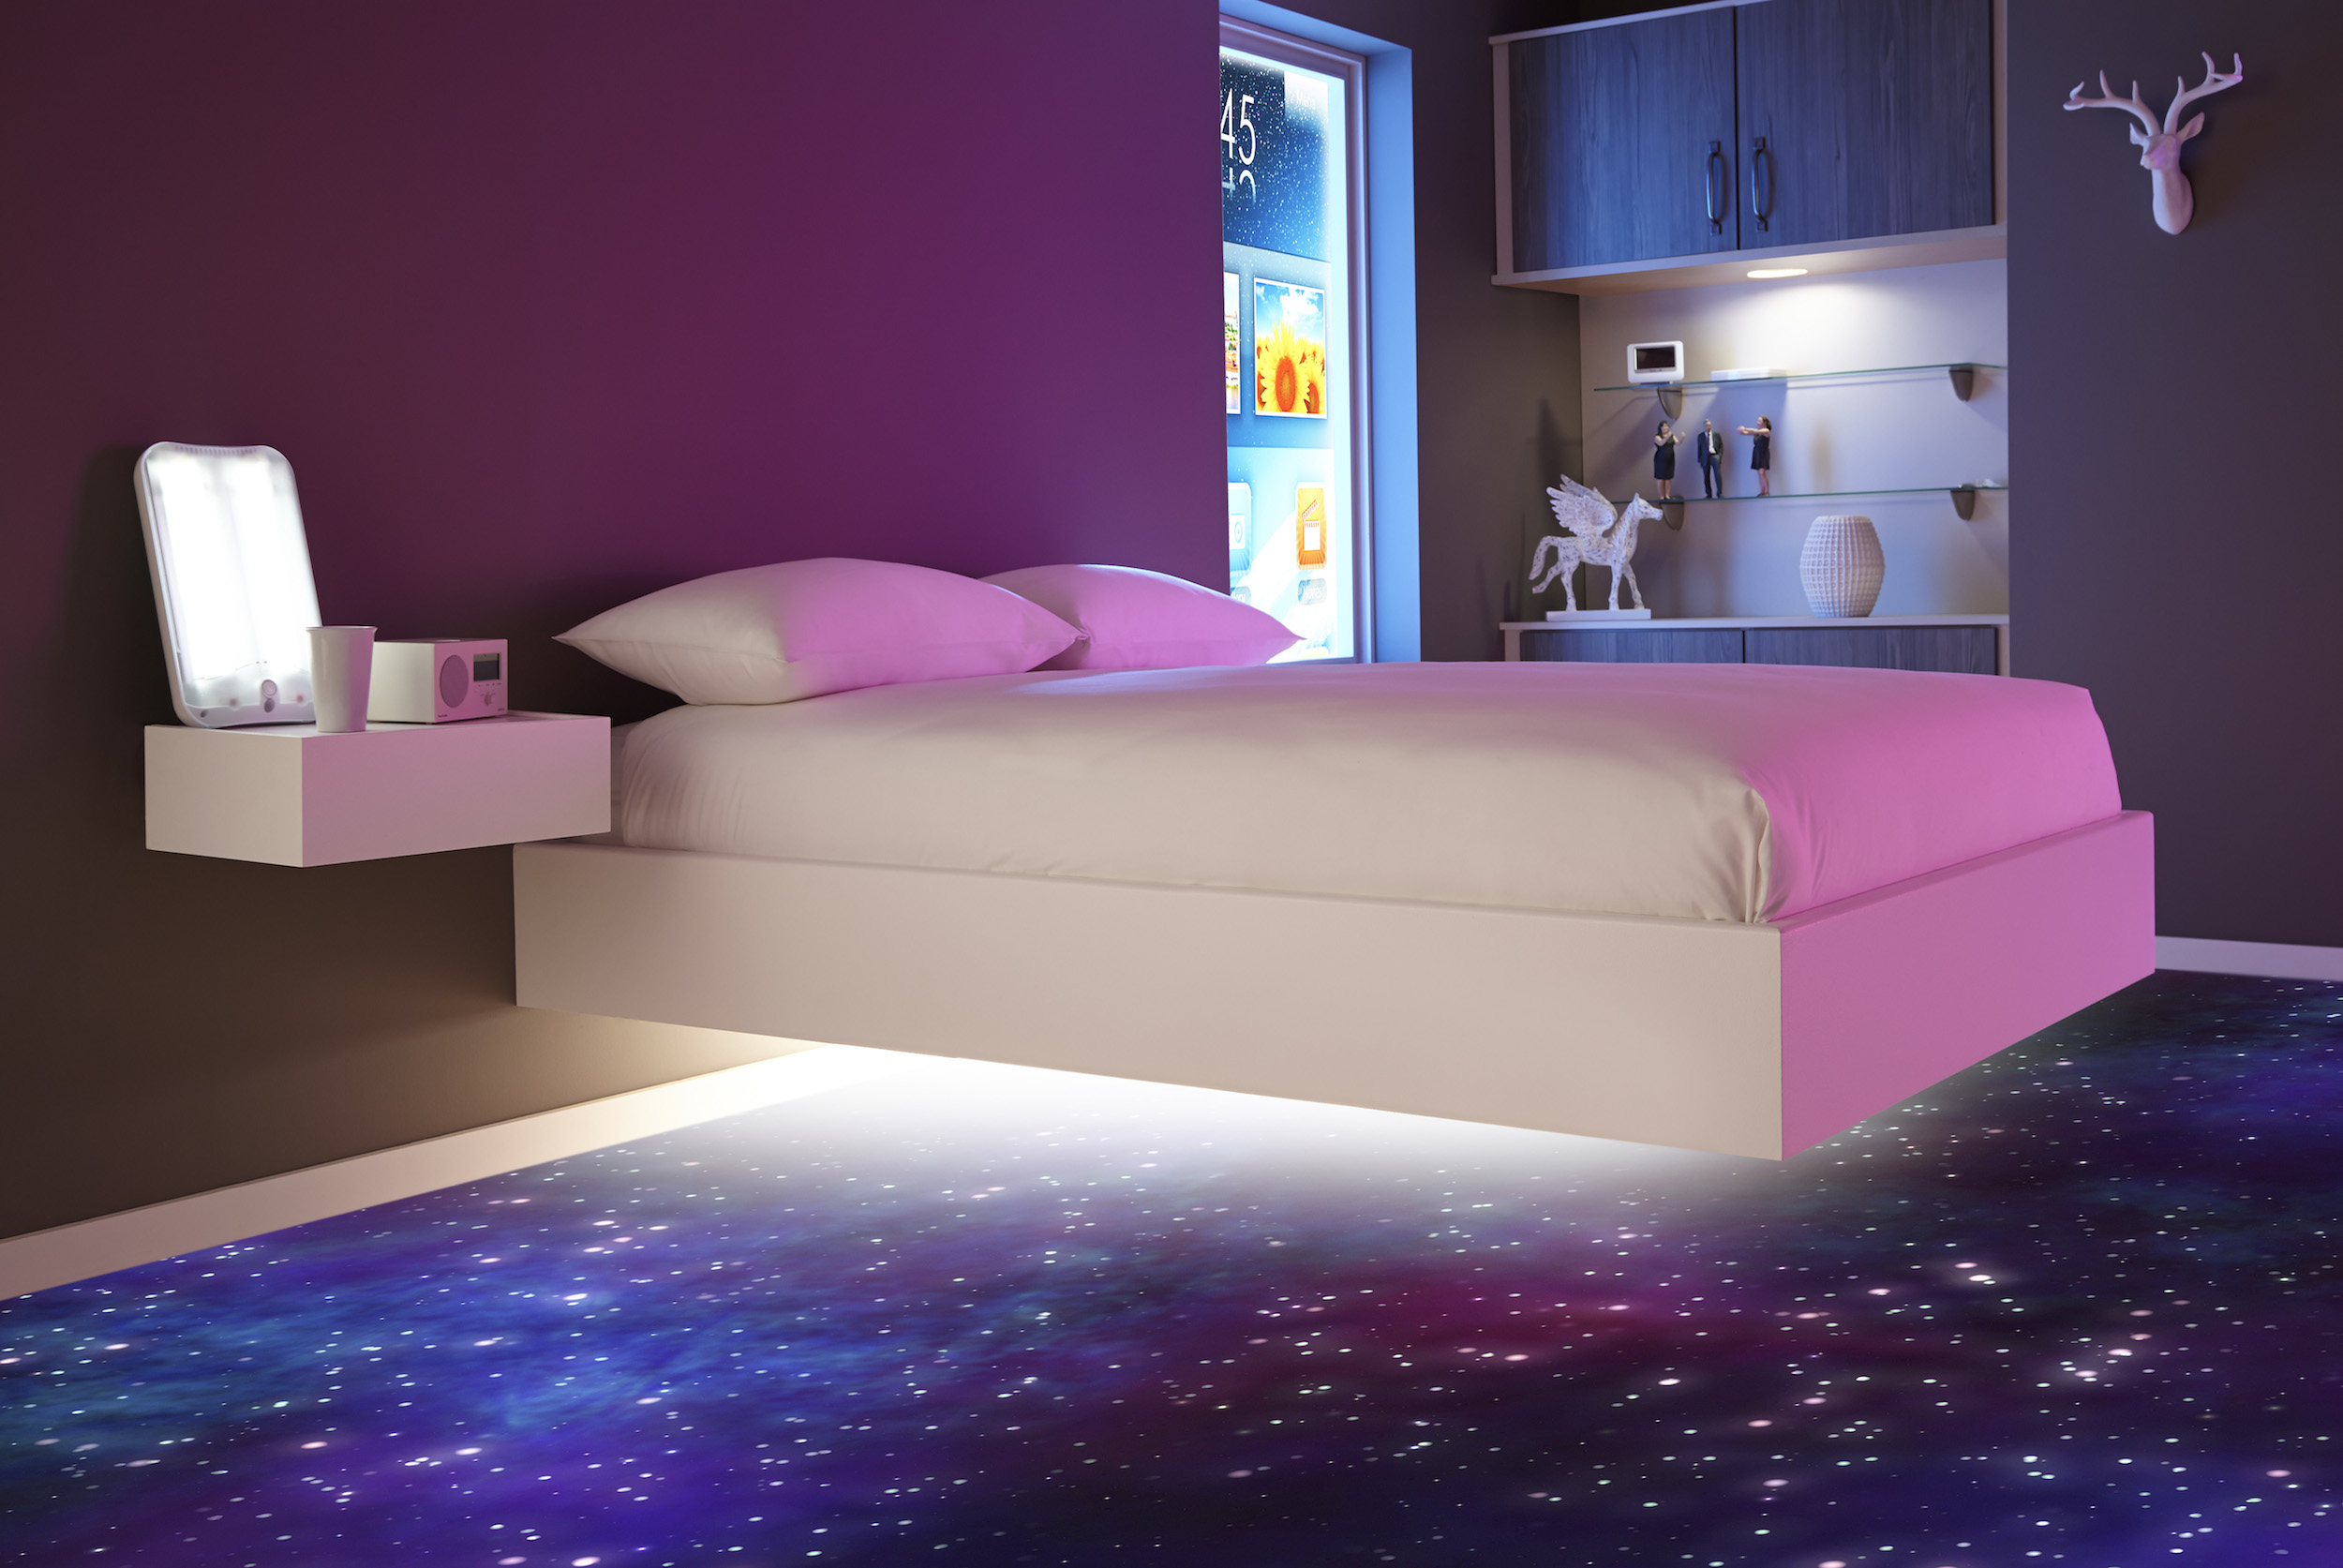 The Bedroom Of Future Win GBP1500 Worth Gadgetry